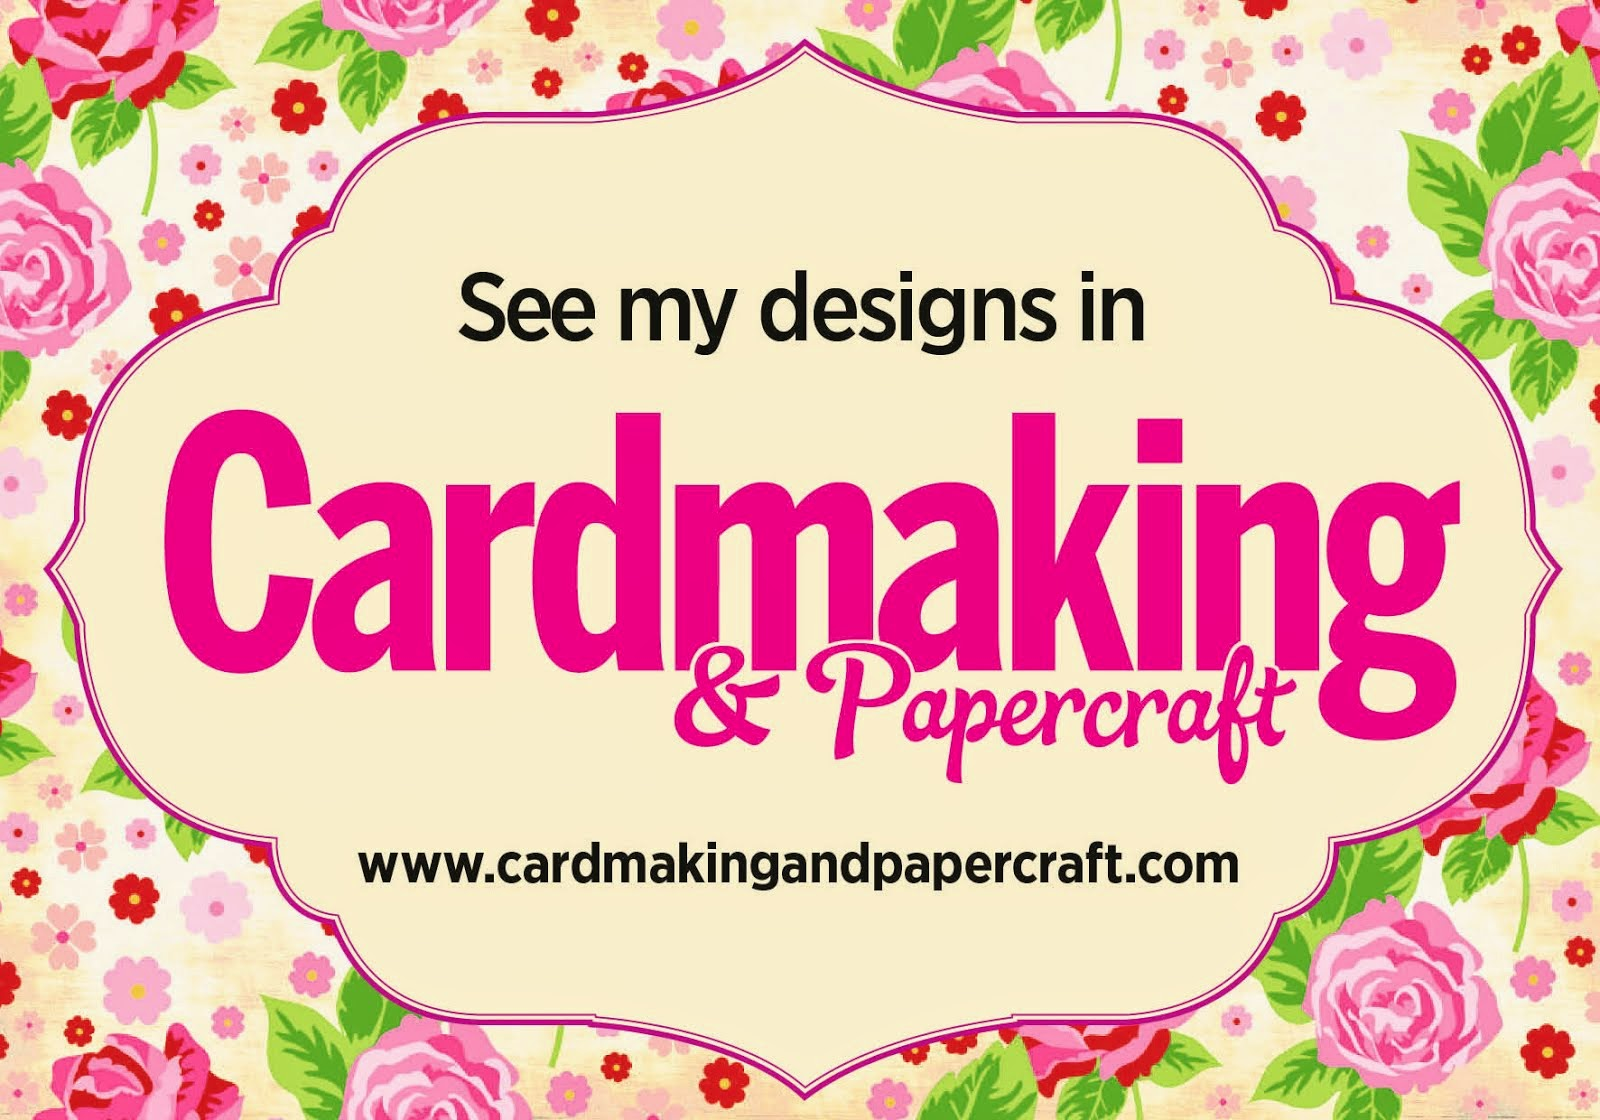 See me published in Cardmaking and Papercraft Magazine